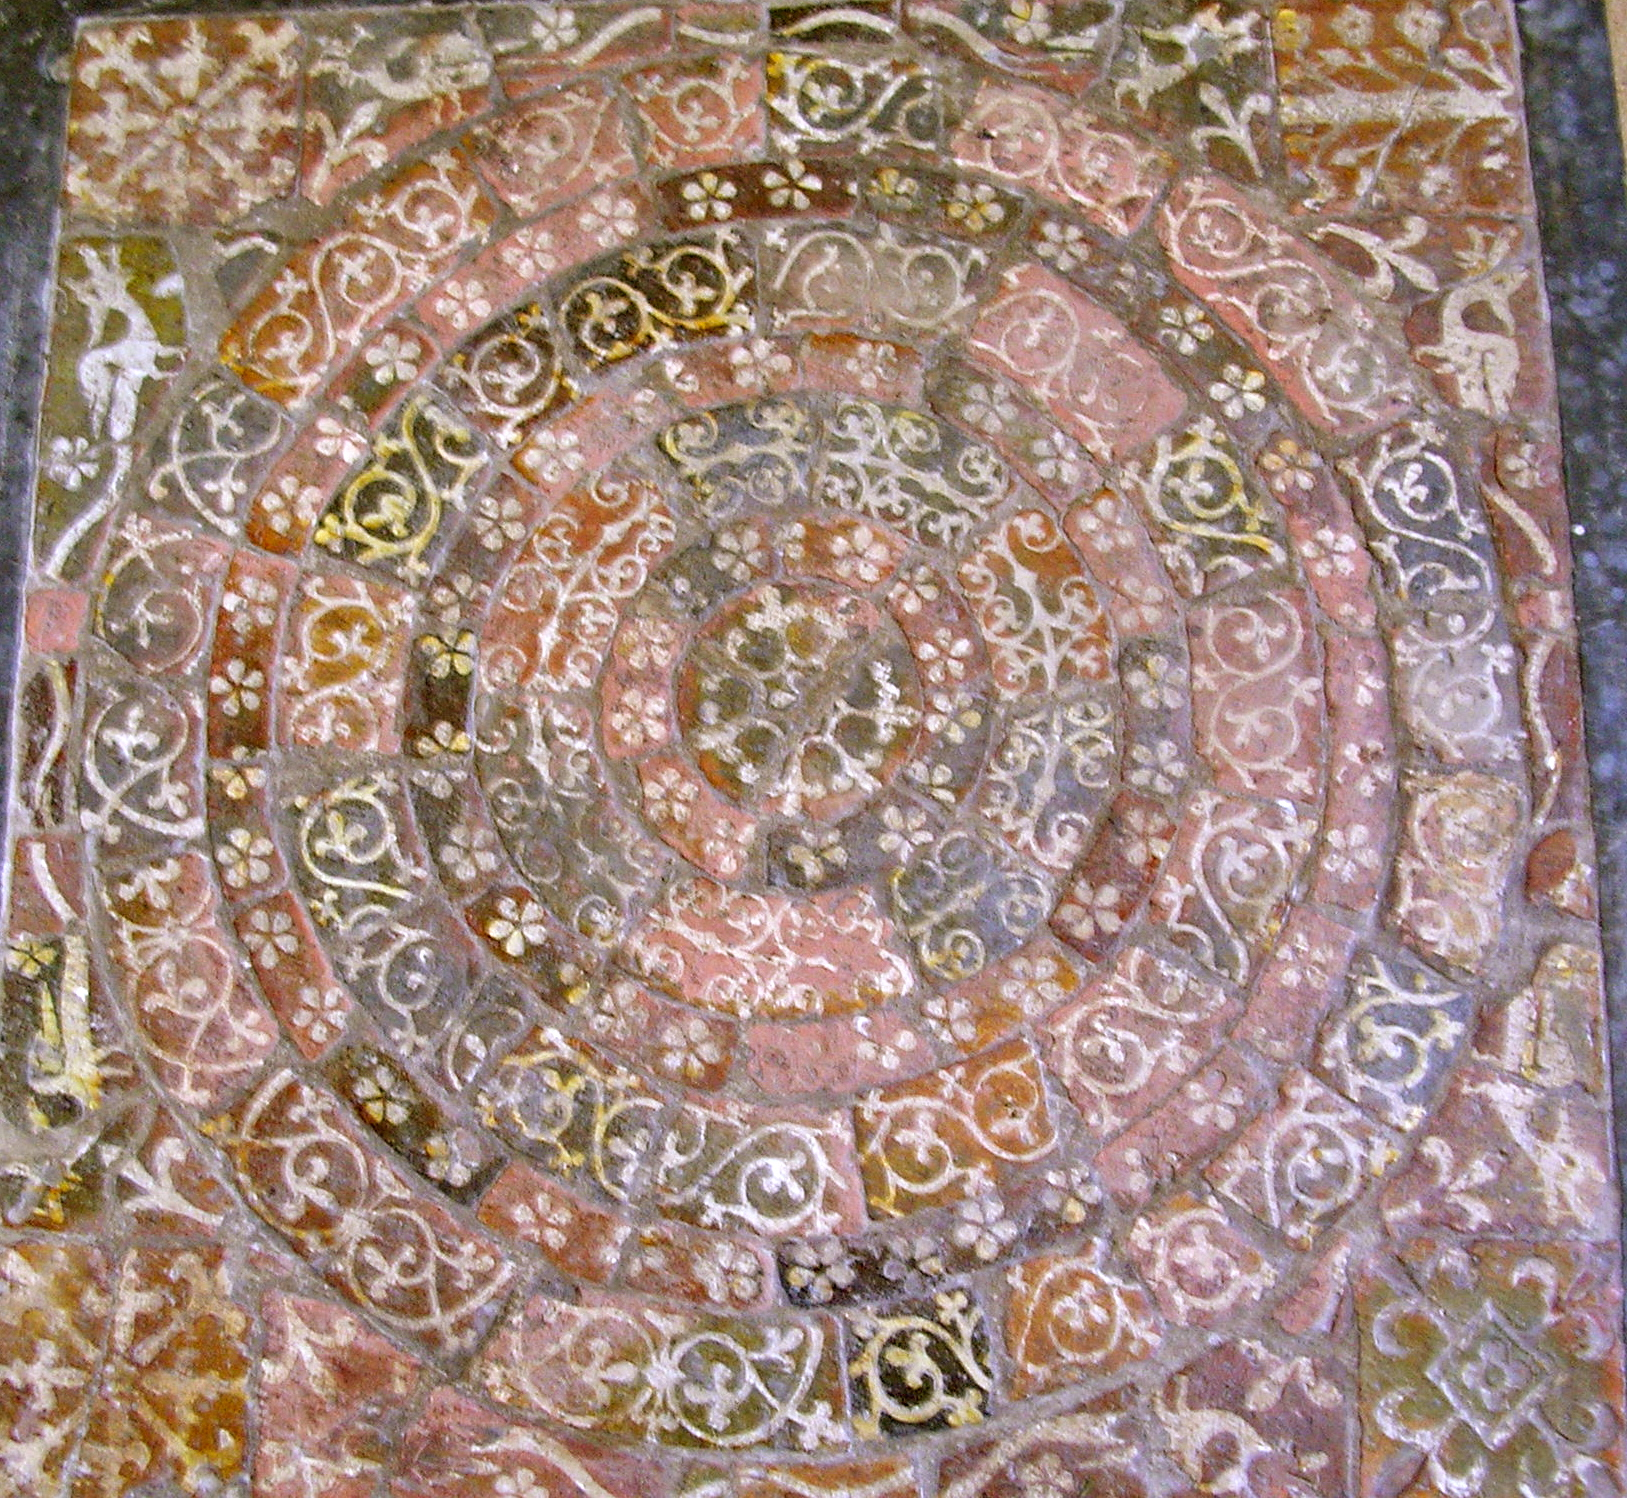 Tiles from Muchelney Abbey